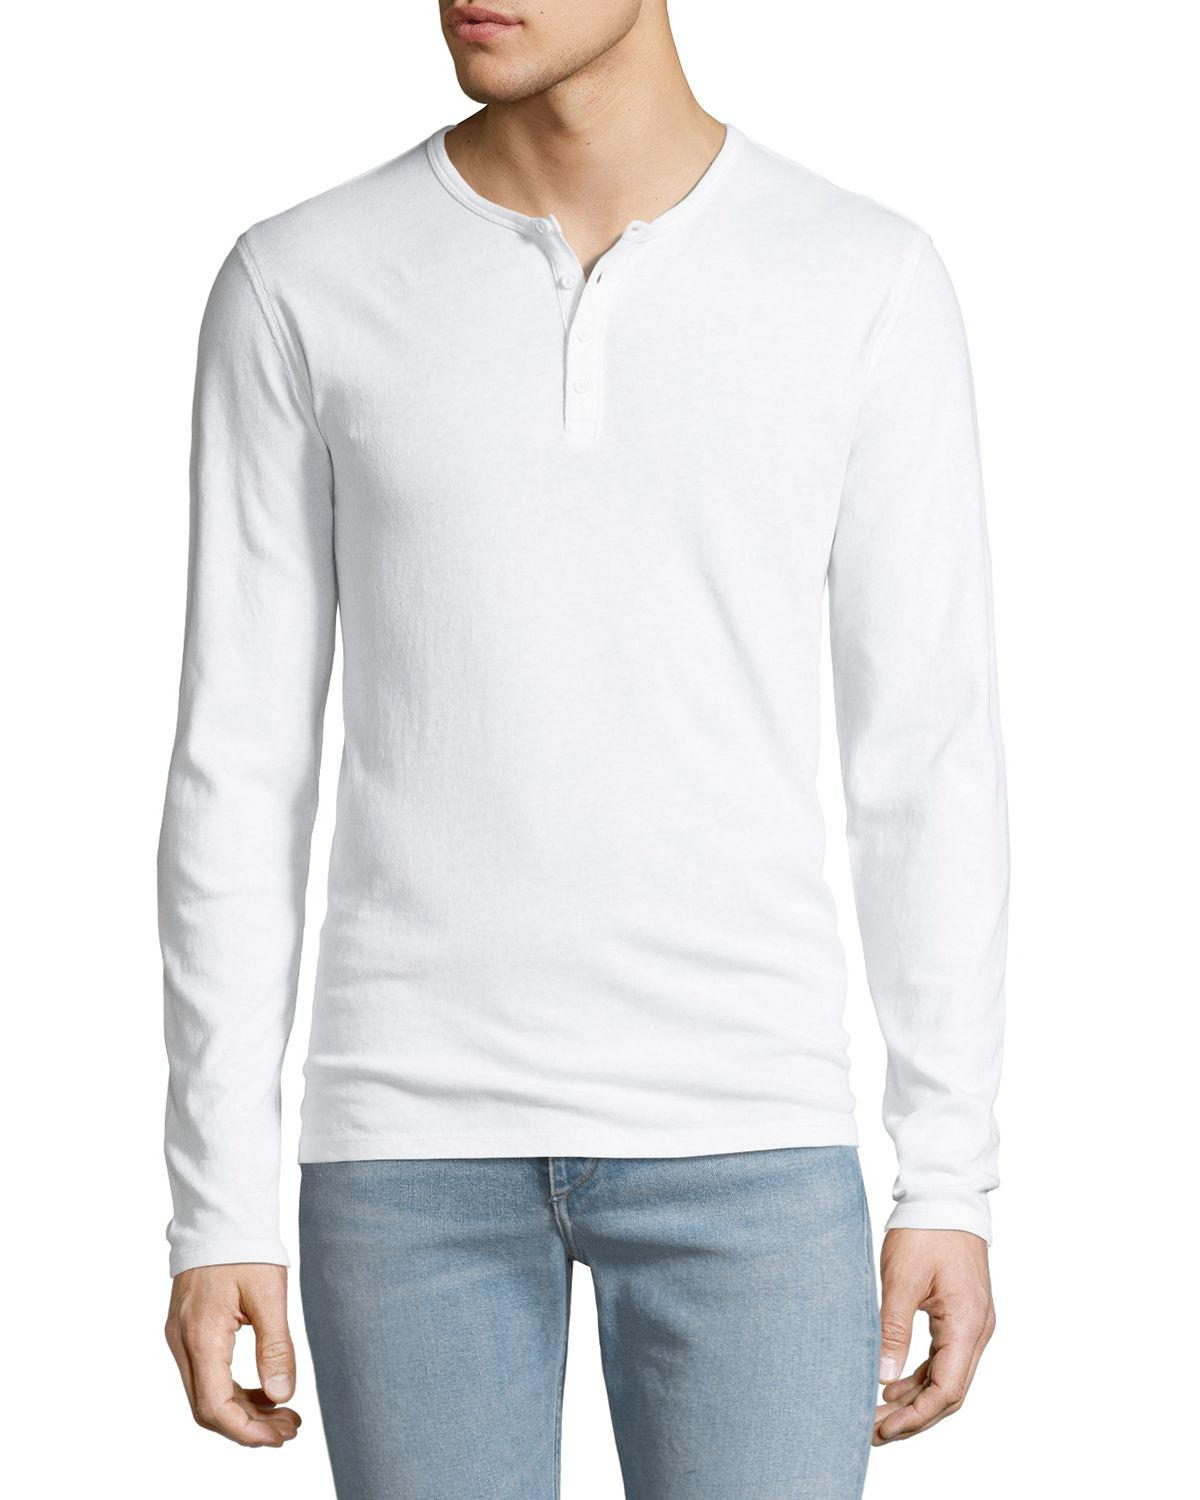 29afdba8226 Lyst - Vince Men s Long-sleeve Raw Edge Henley Shirt in White for Men